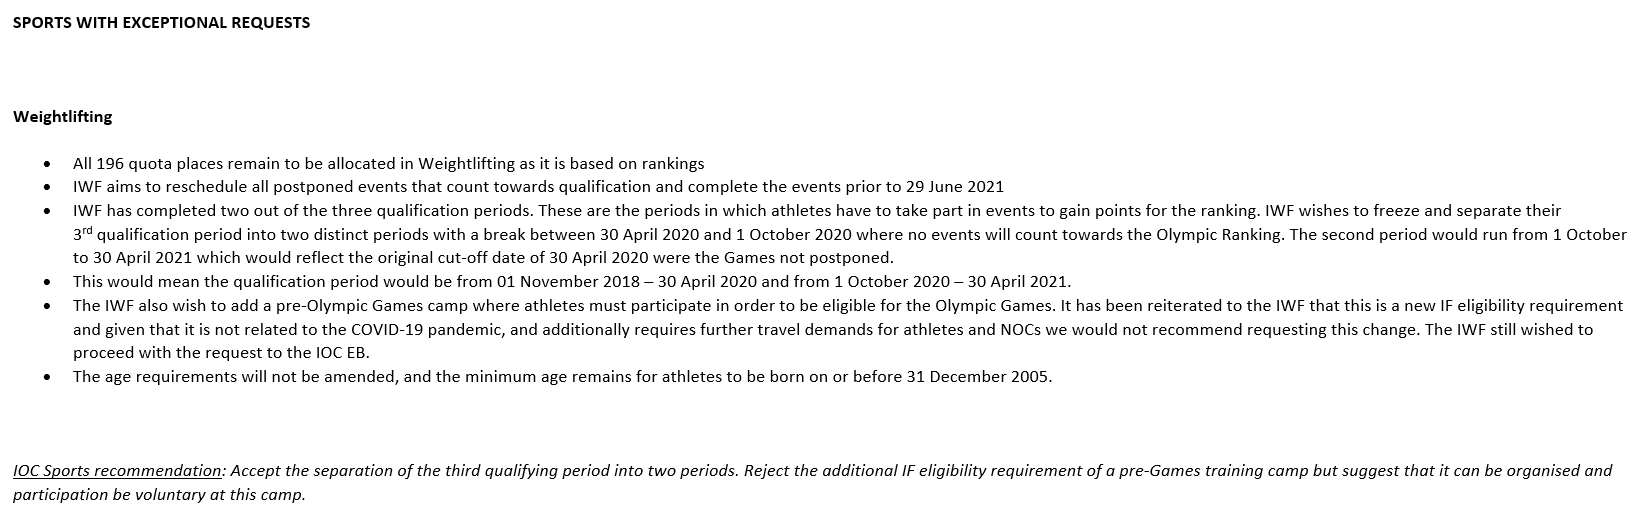 Documents seen by insidethegames show the updated weightlifting qualification process for Tokyo 2020